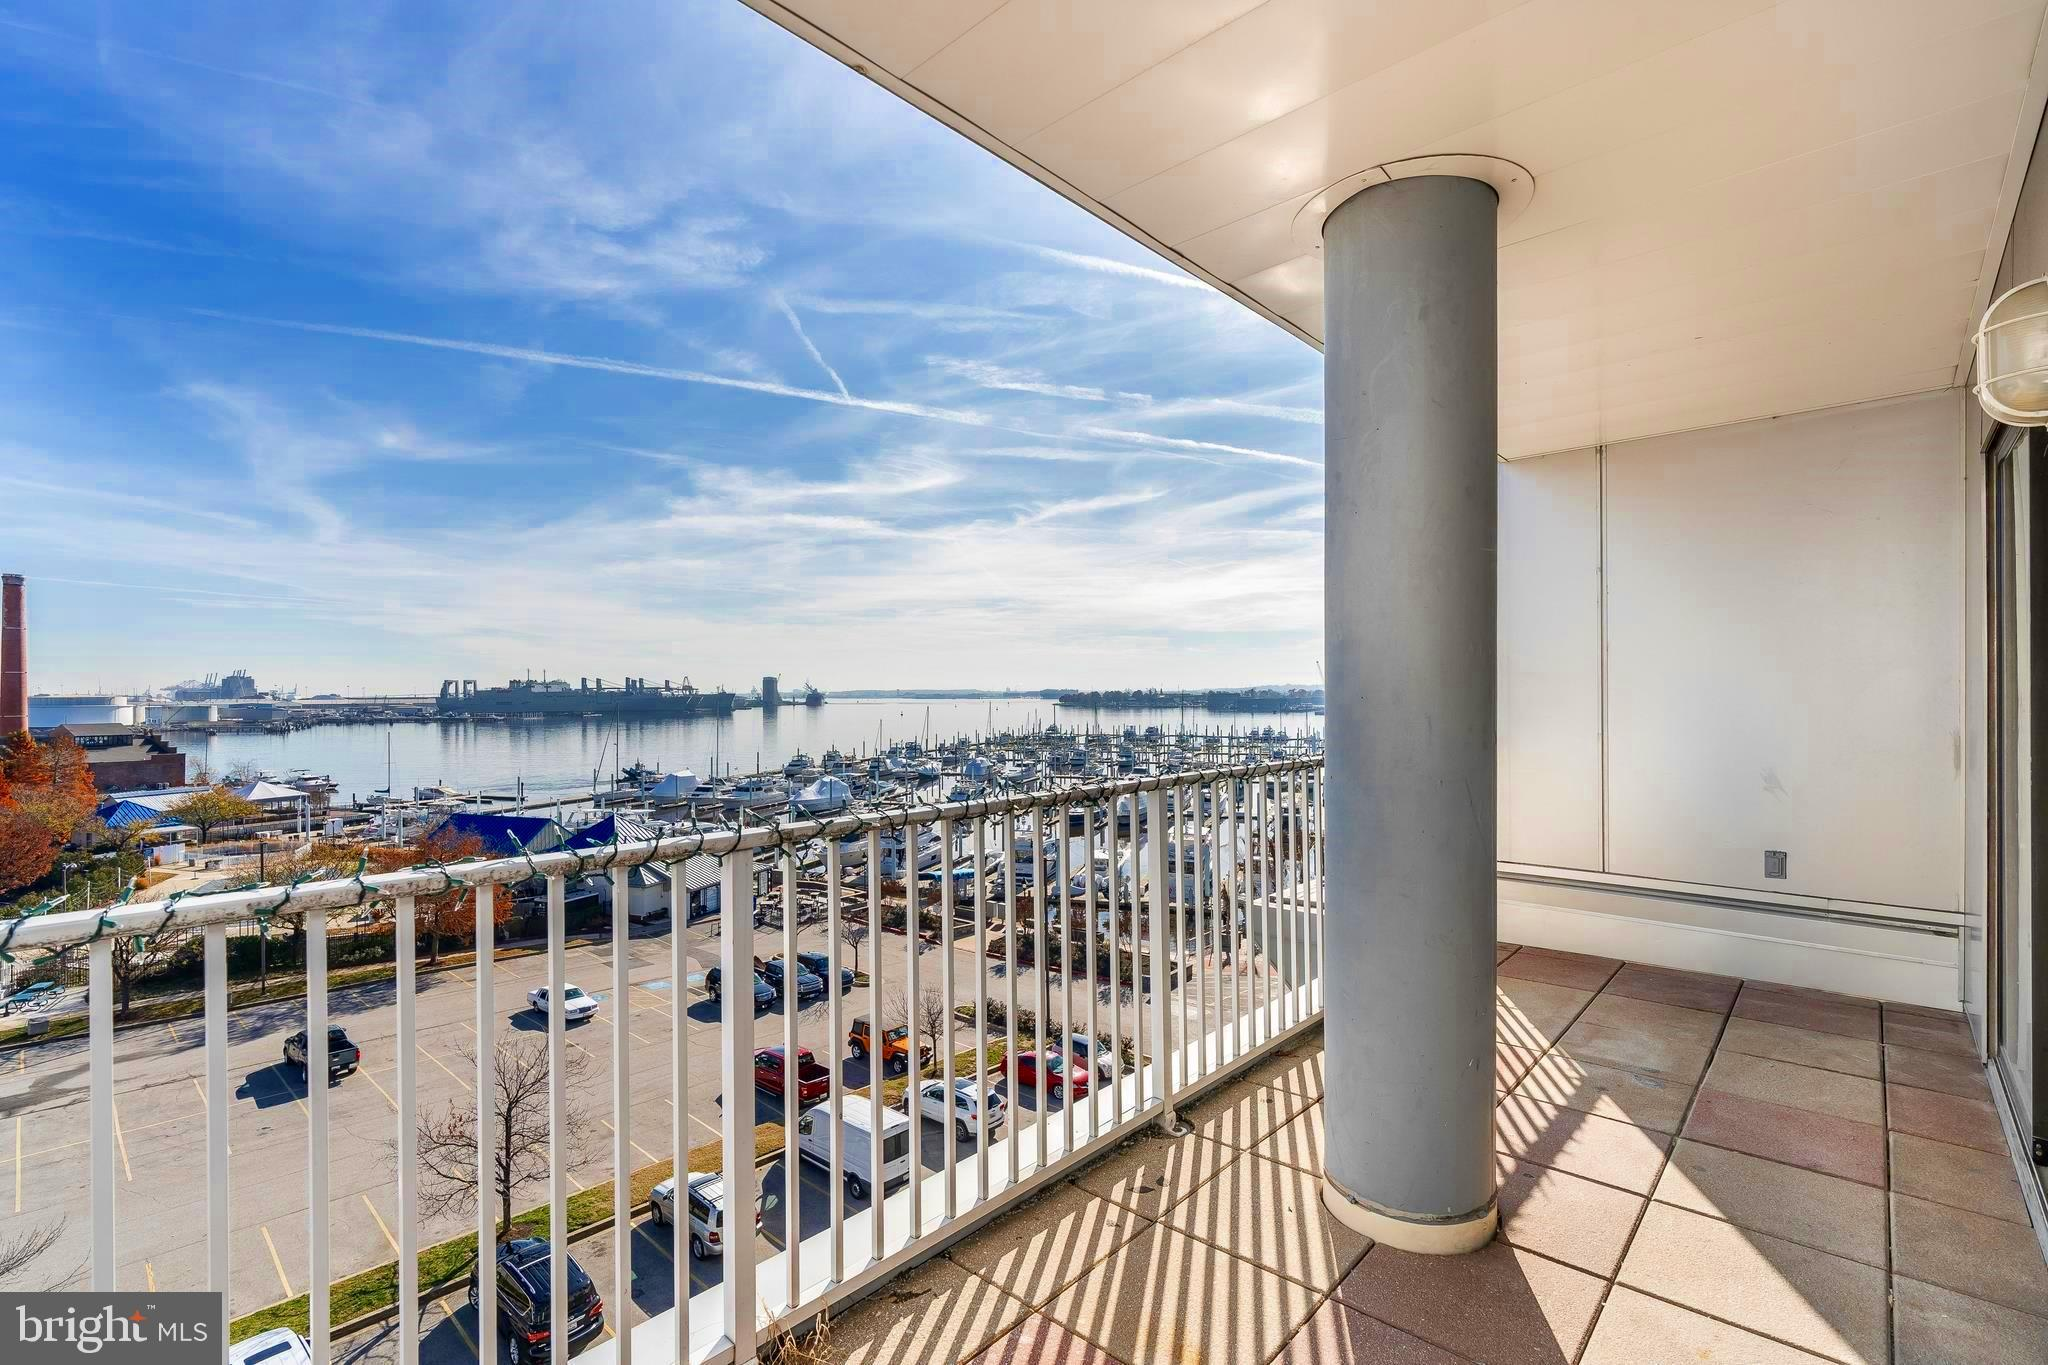 If you are in the market for a SUNDRENCHED  condo in a 24-hour SECURE building, you must check out this beautifully updated 5th floor condo with a SPECTACULAR view of the Marina and the City beyond.  A QUIET sophisticated building close to all Canton amenities.  Beautiful new flooring and neutral paint, granite and stainless kitchen,  Covered parking.  20' long Covered Balcony with enchanting Marina views.  Very spacious bedrooms share the Marina views.  Very large walk in closets in each bedroom.  Two generous full  baths with new vanities and tops. Full size washer/dryer. Absolutely move in ready!  BEST VALUE IN CANTON.   Make this your home for the New Year!